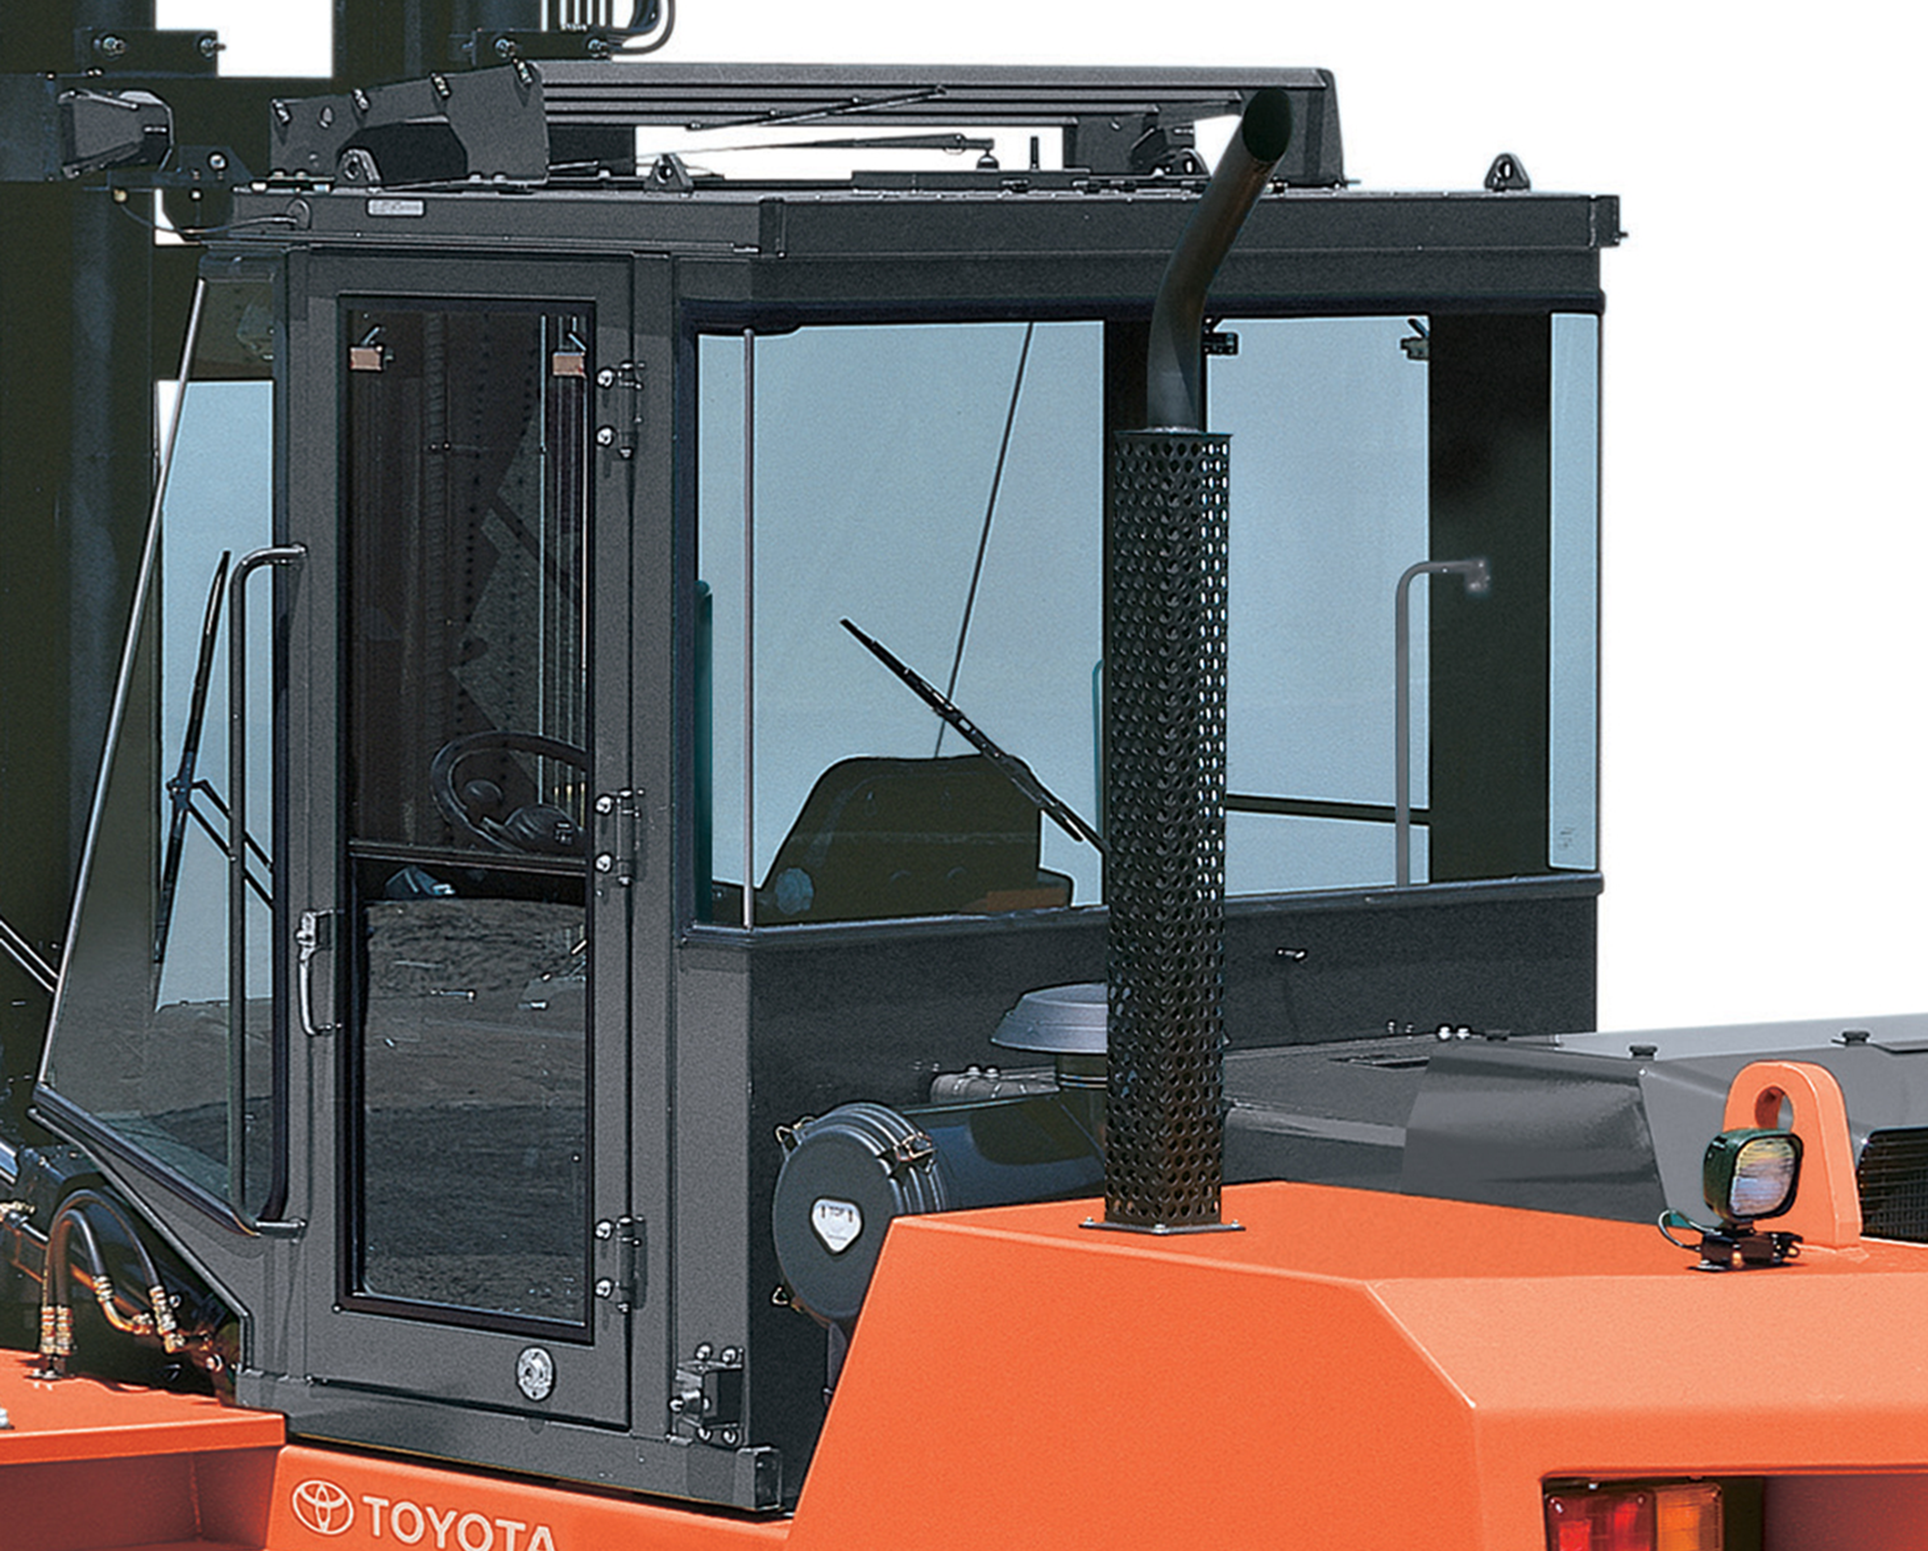 Close-up of enclosed cab for Toyota's High-Capacity IC Pneumatic forklift.